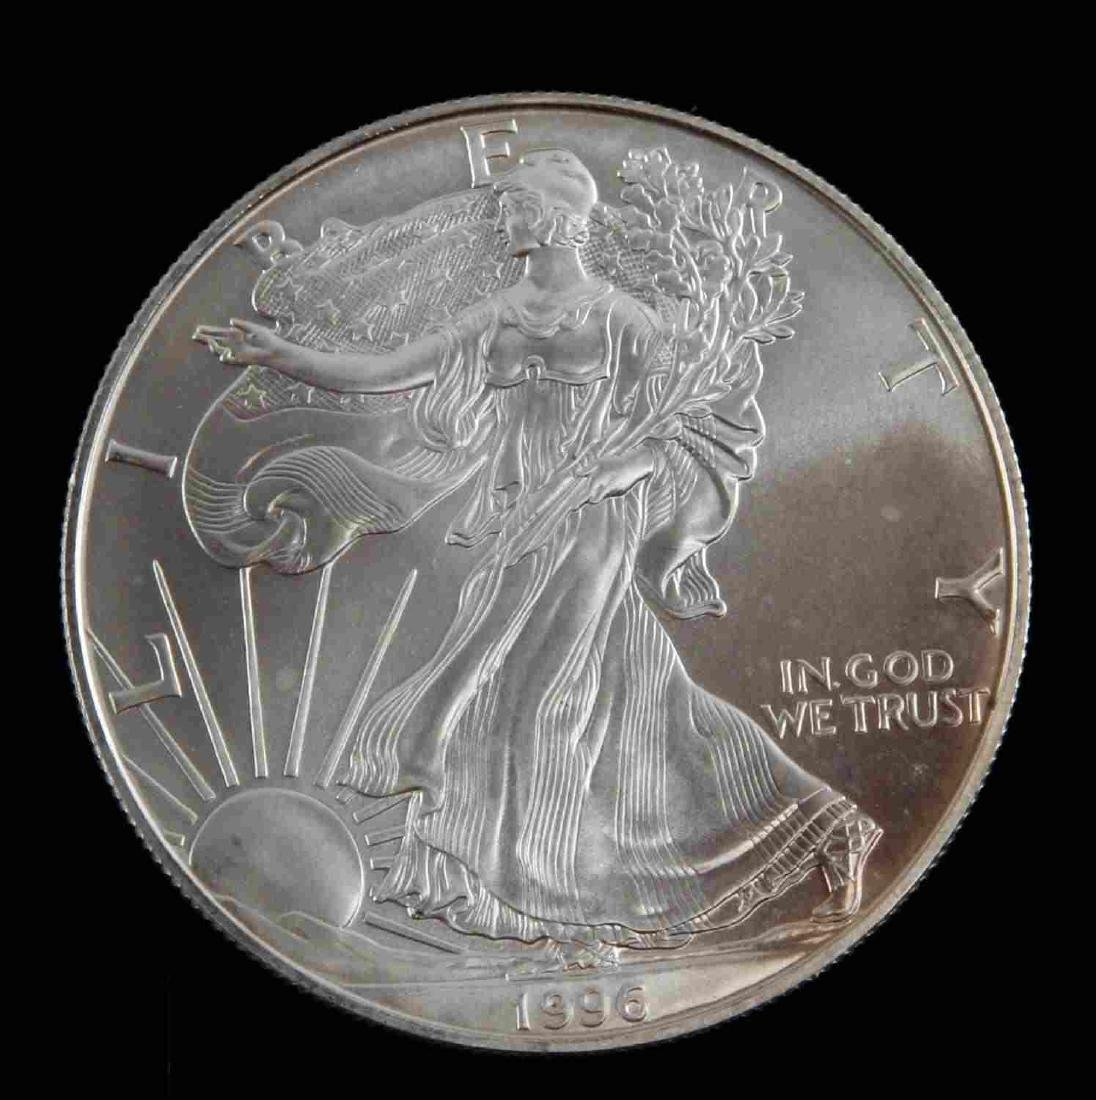 1996 MS & 19931993 PF SILVER EAGLES & KOREAN PROOF - 4